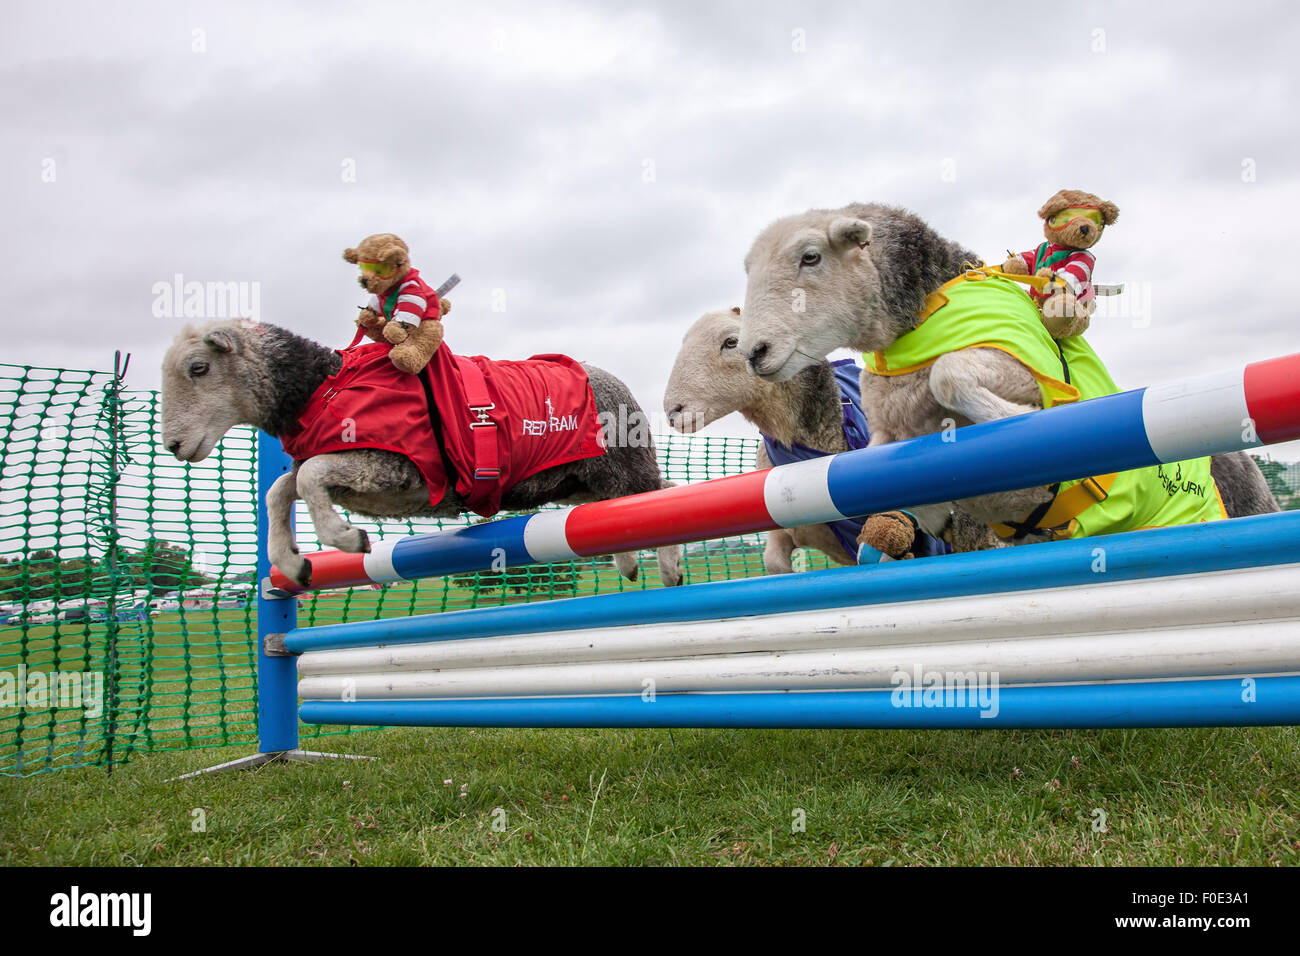 Rockingham Castle, Northamptonshire, UK. 13th August 2015. 11th Kennel Club International 4 day Dog Agility Festival, - Stock Image